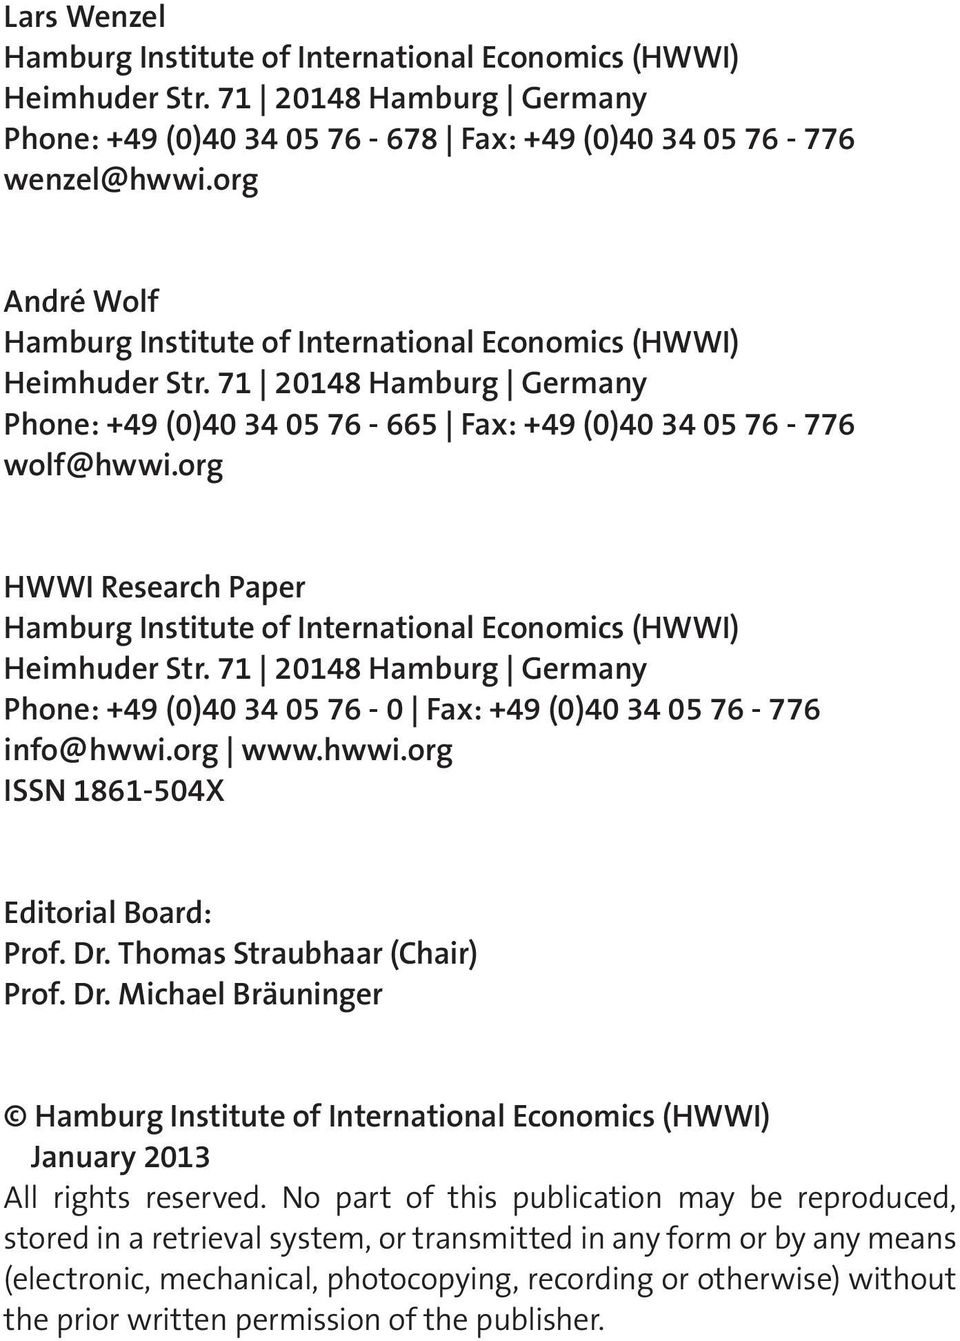 org HWWI Research Paper Hamburg Institute of International Economics (HWWI) Heimhuder Str. 71 20148 Hamburg Germany Phone: +49 (0)40 34 05 76-0 Fax: +49 (0)40 34 05 76-776 info@hwwi.